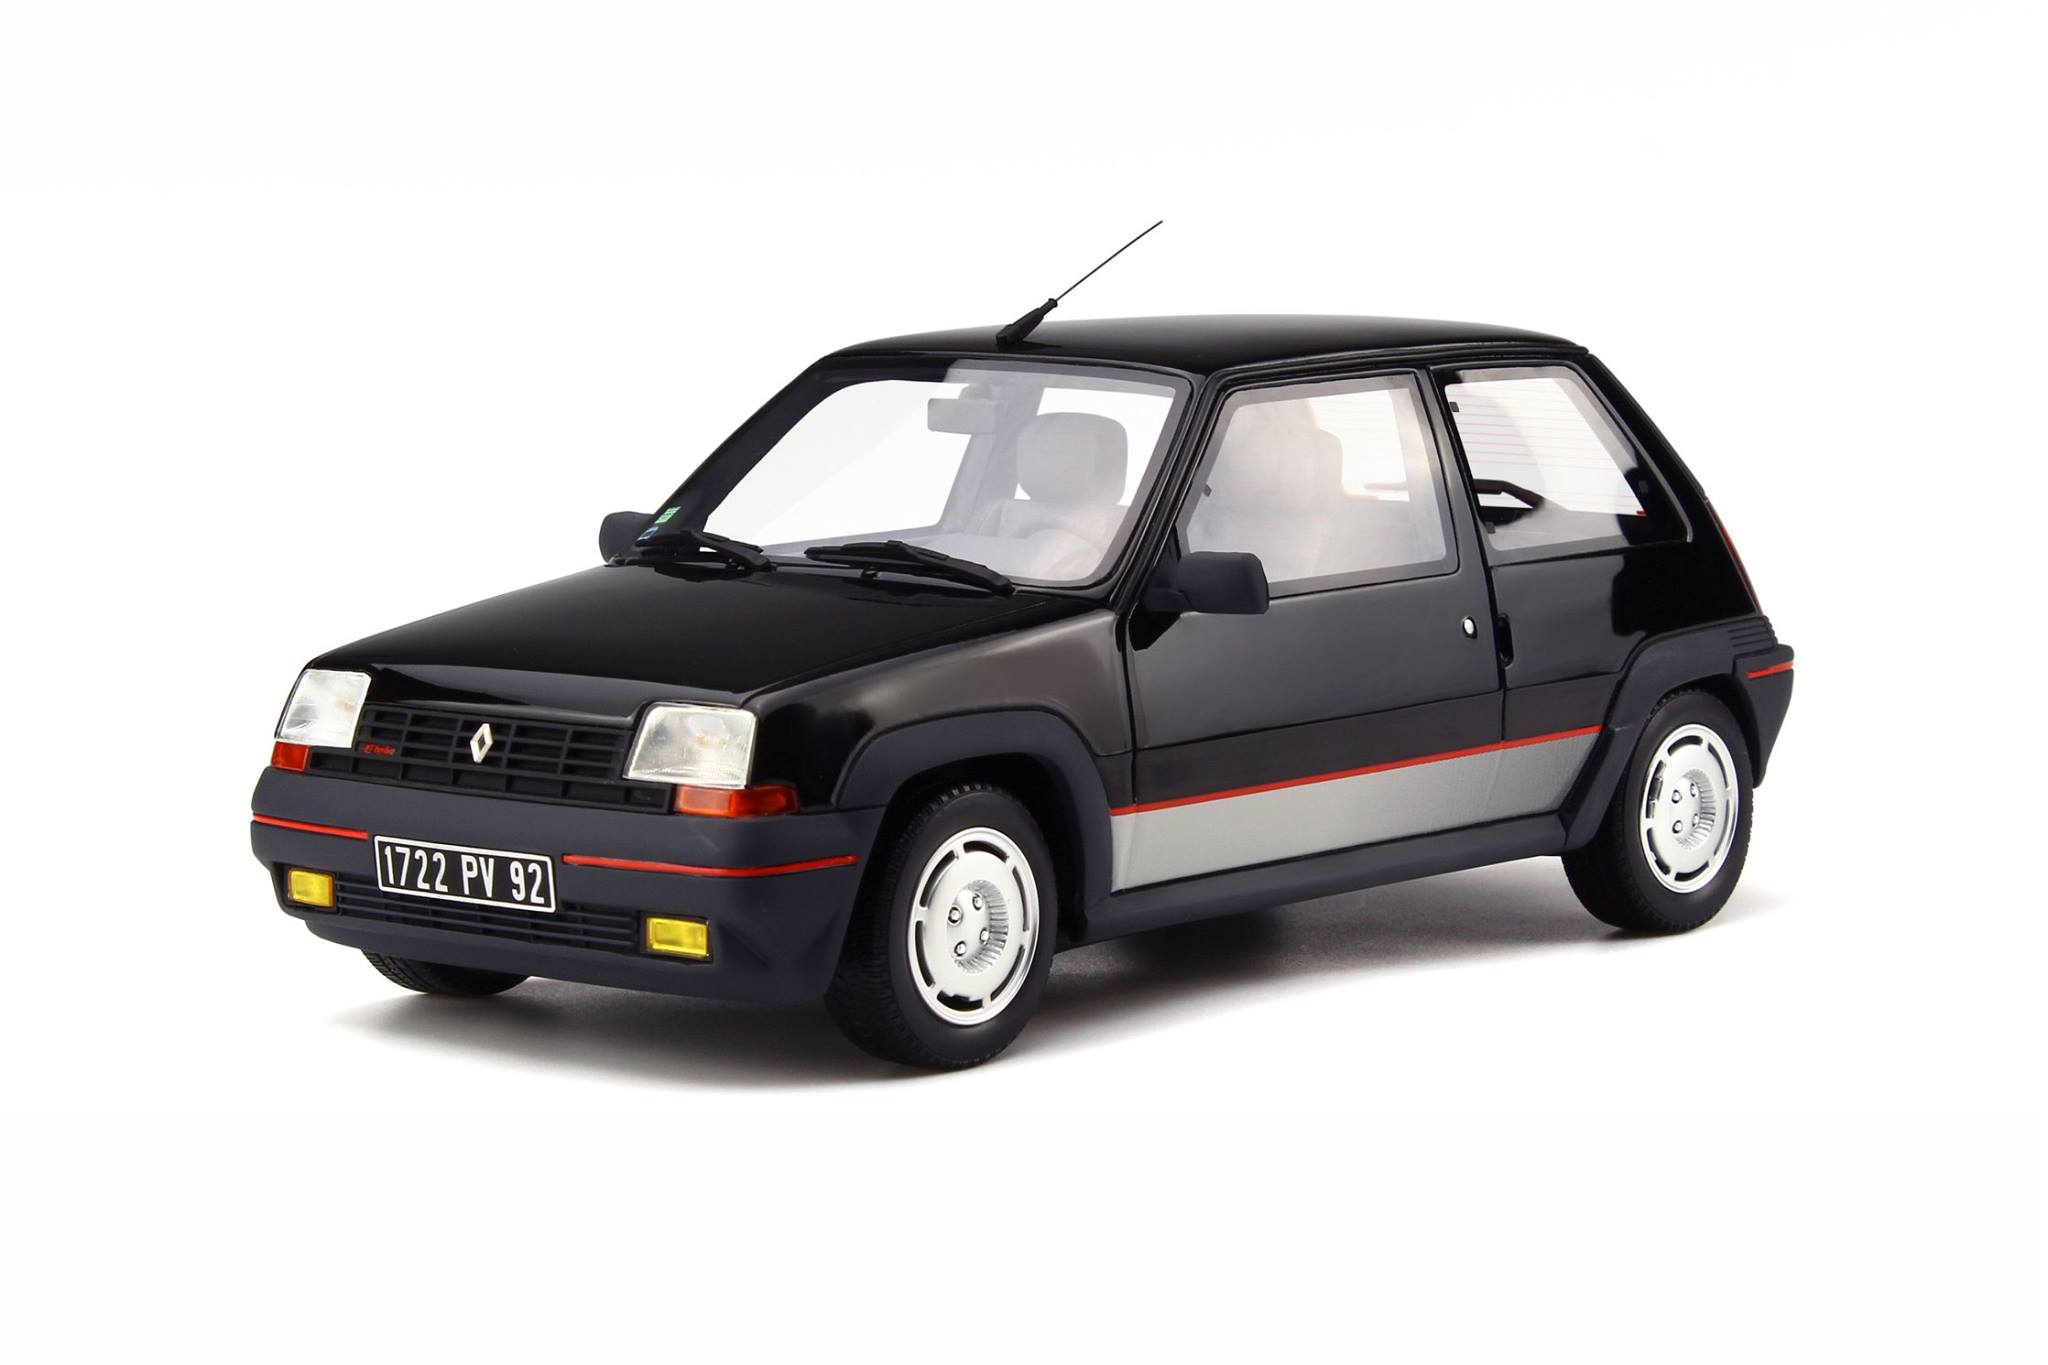 renault 5 gt turbo mk1 by ottomobile 1 18 scale choice. Black Bedroom Furniture Sets. Home Design Ideas